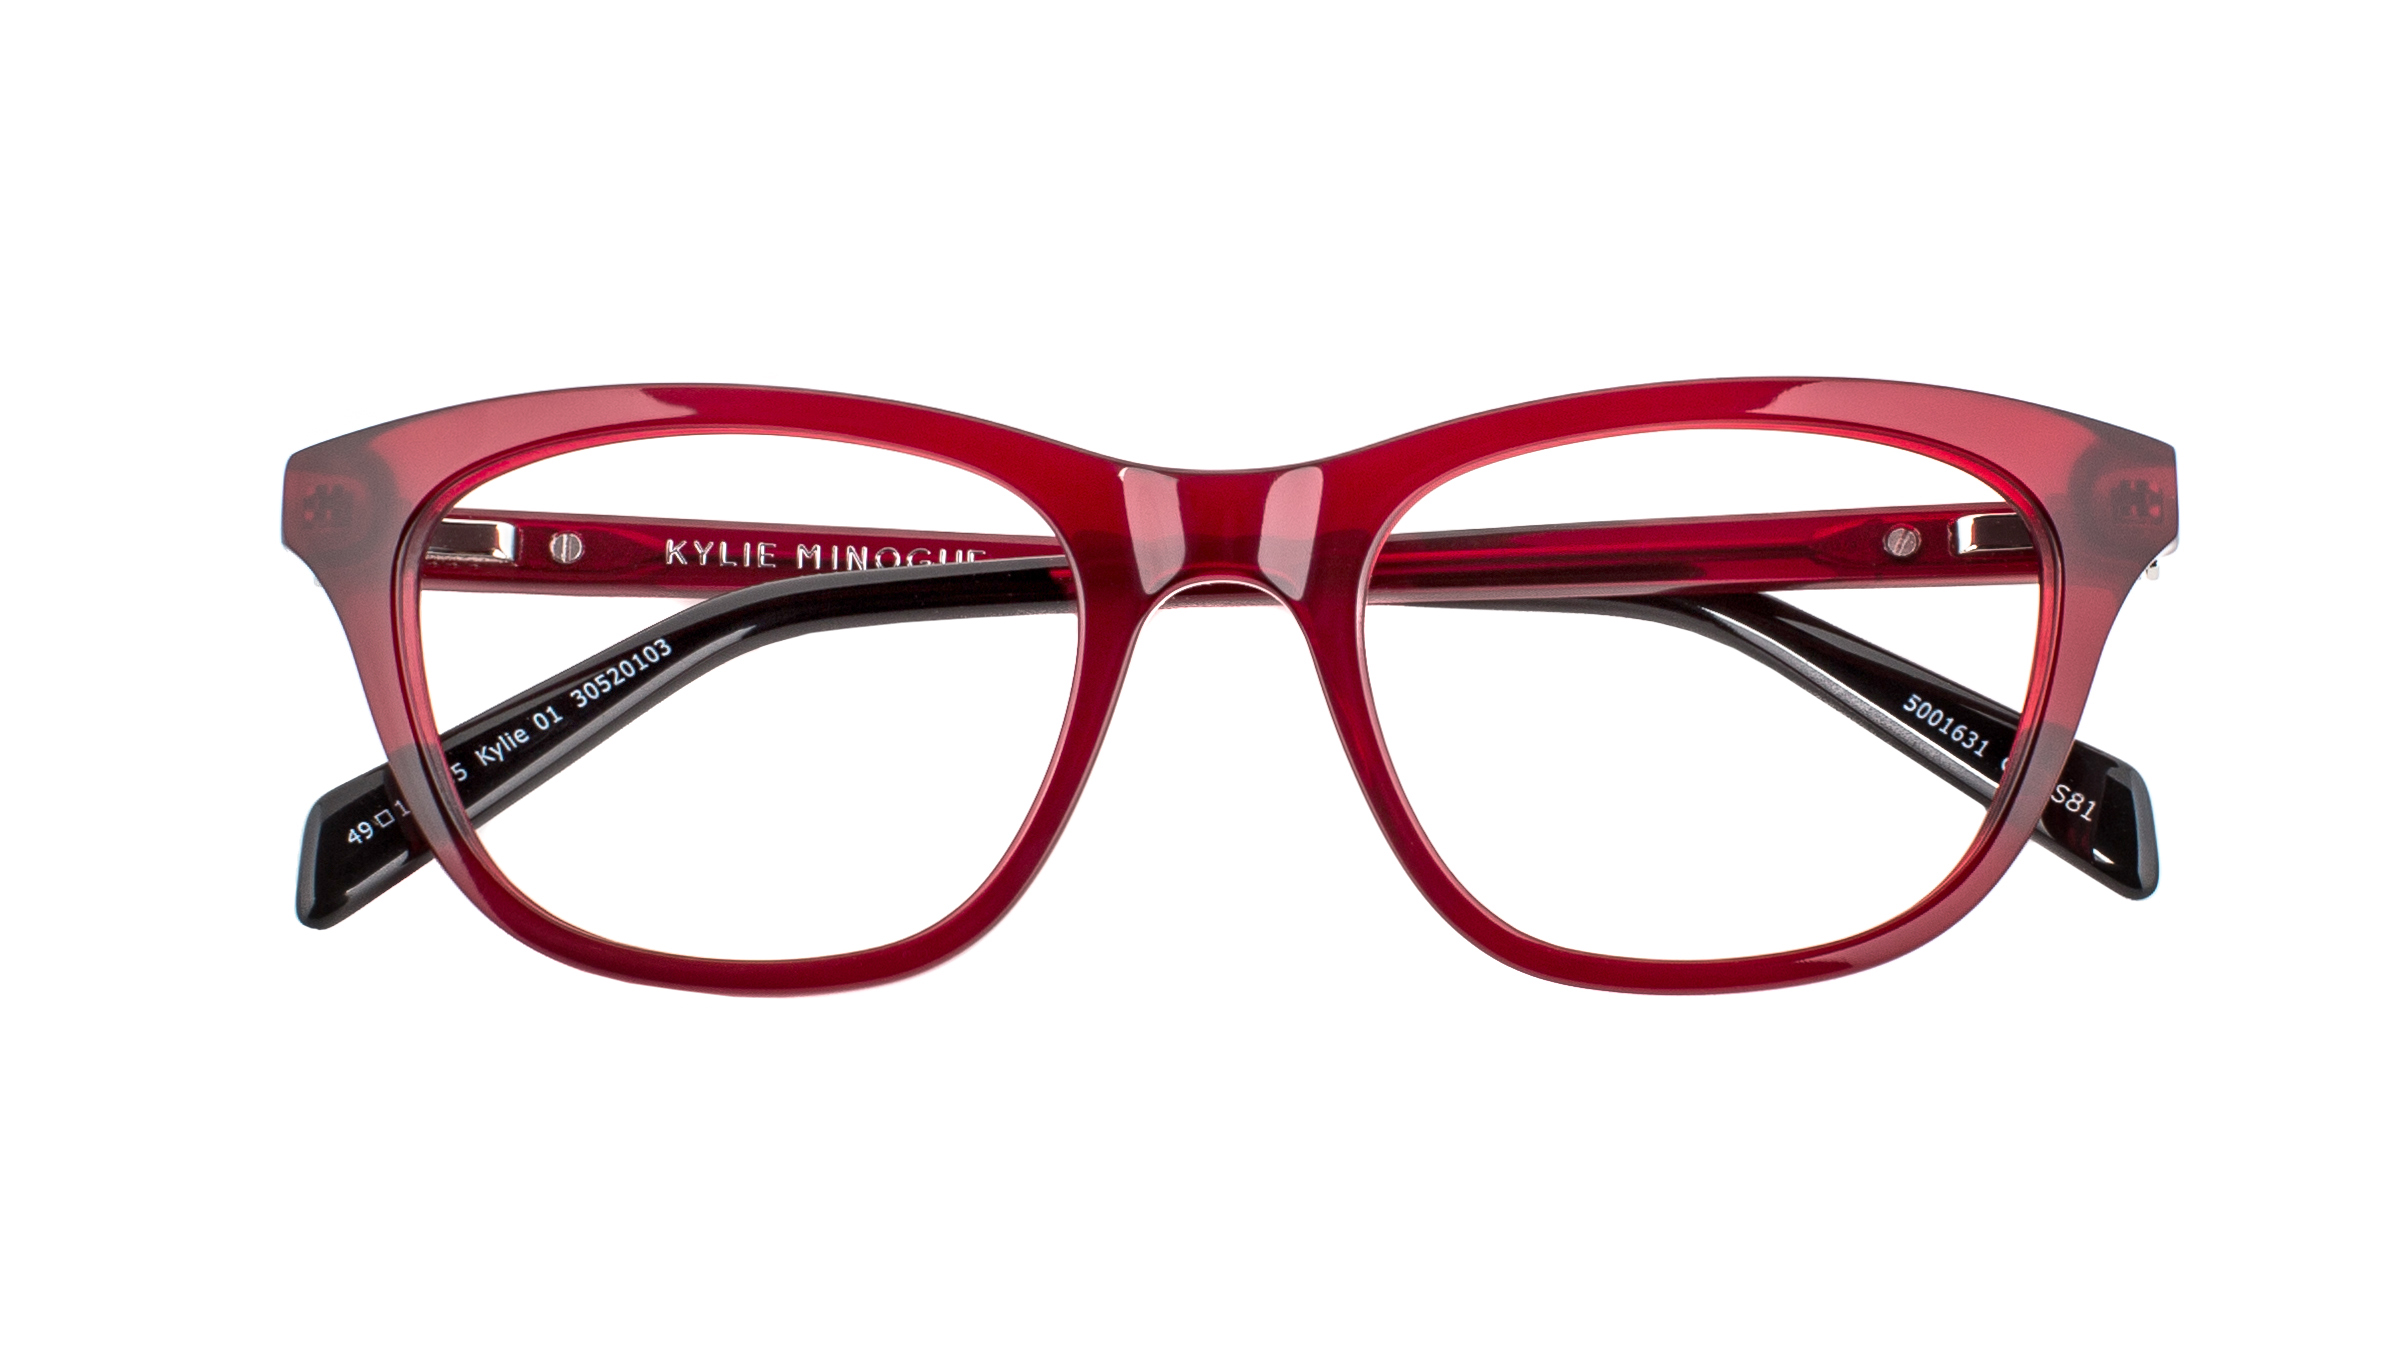 Kylie Minogue Eyewear_Kylie 01_SKU 30520103_RRP 2 pairs from $369